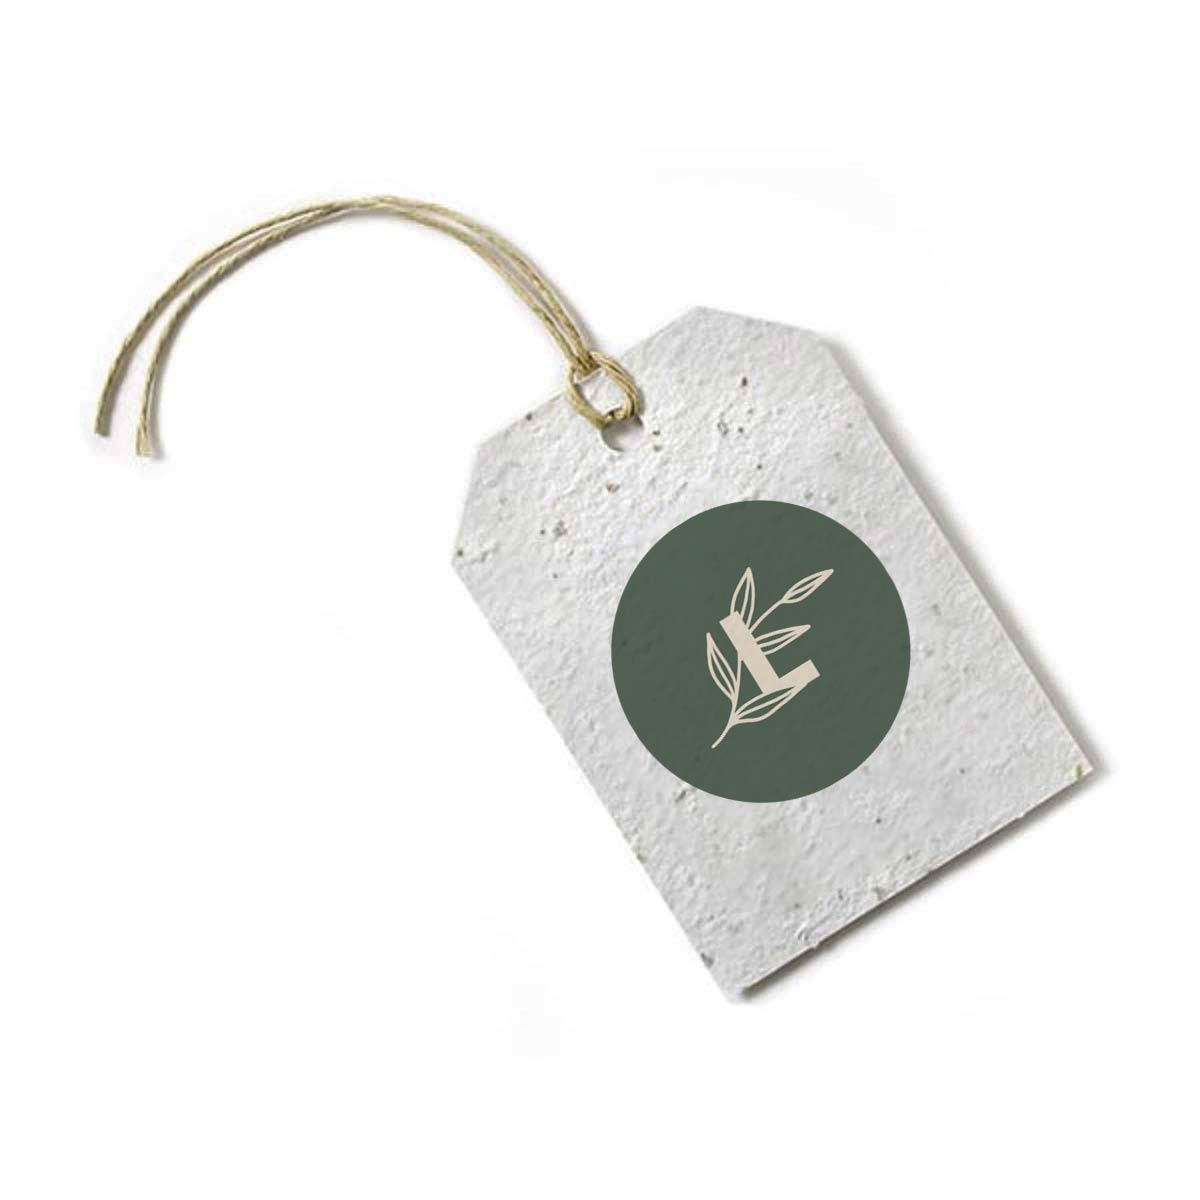 287071 seed paper tag 1 side imprint full color